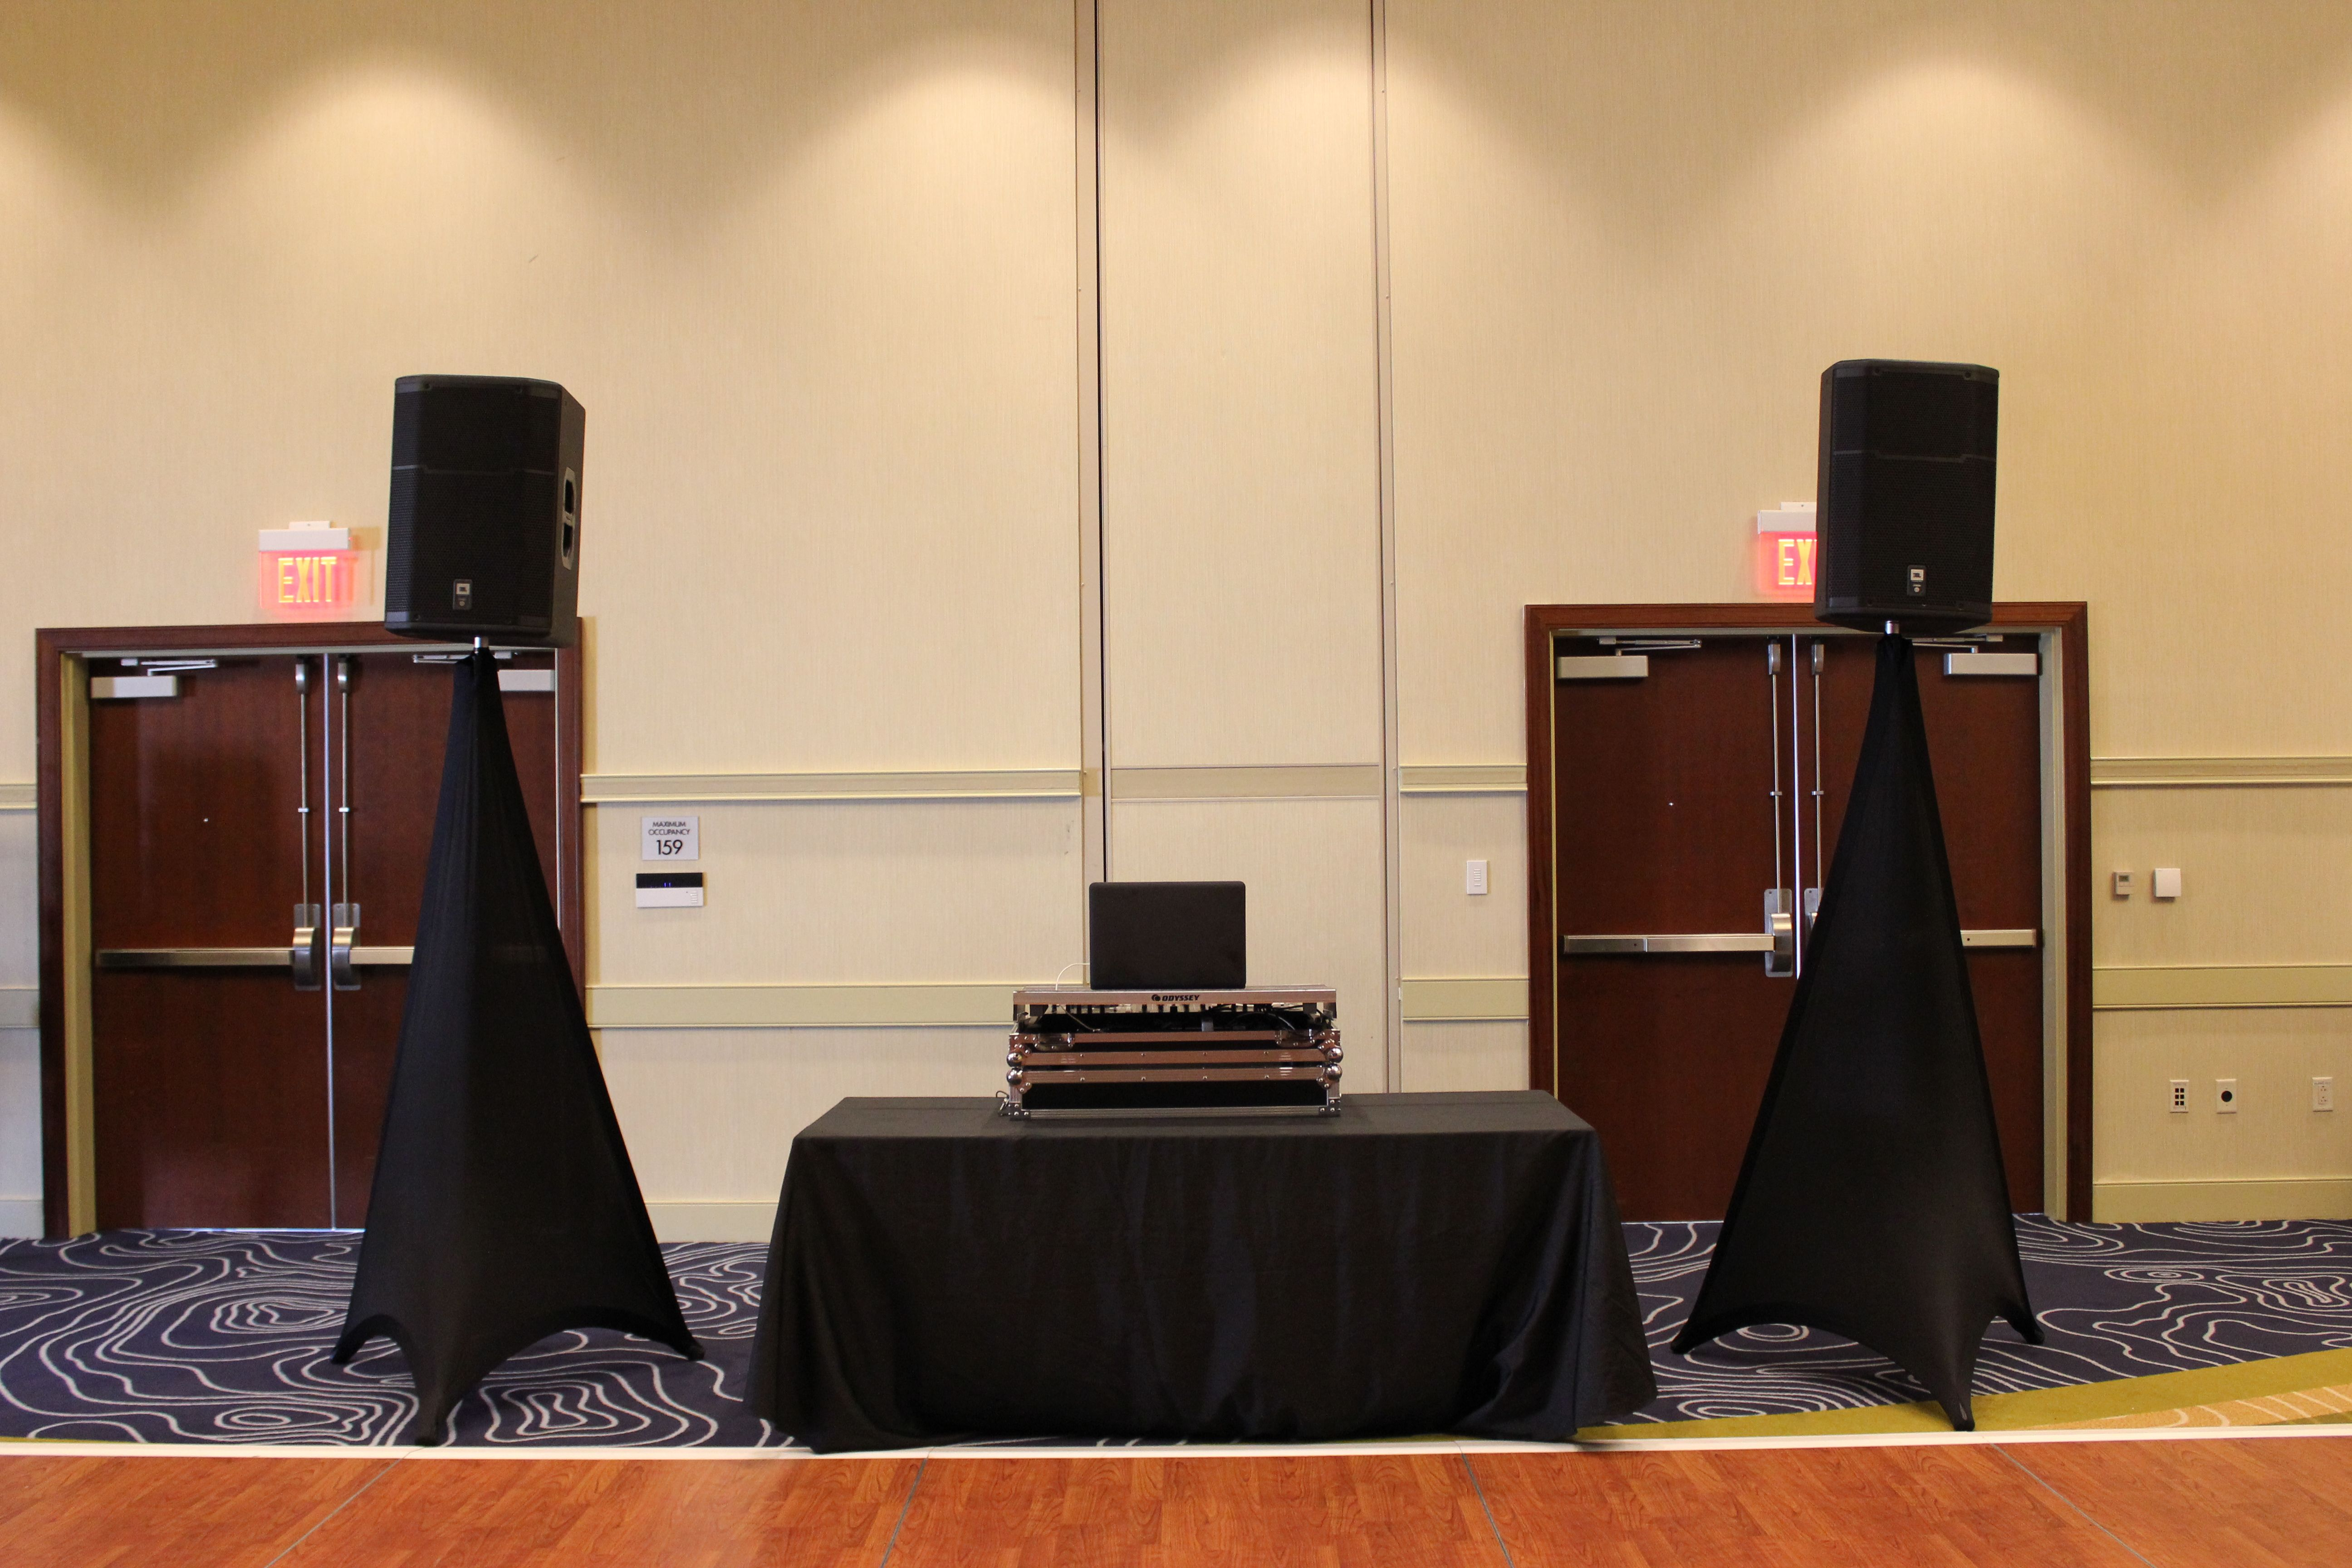 basic mobile dj setup with black skirting to hide speaker stands this can be used when client. Black Bedroom Furniture Sets. Home Design Ideas